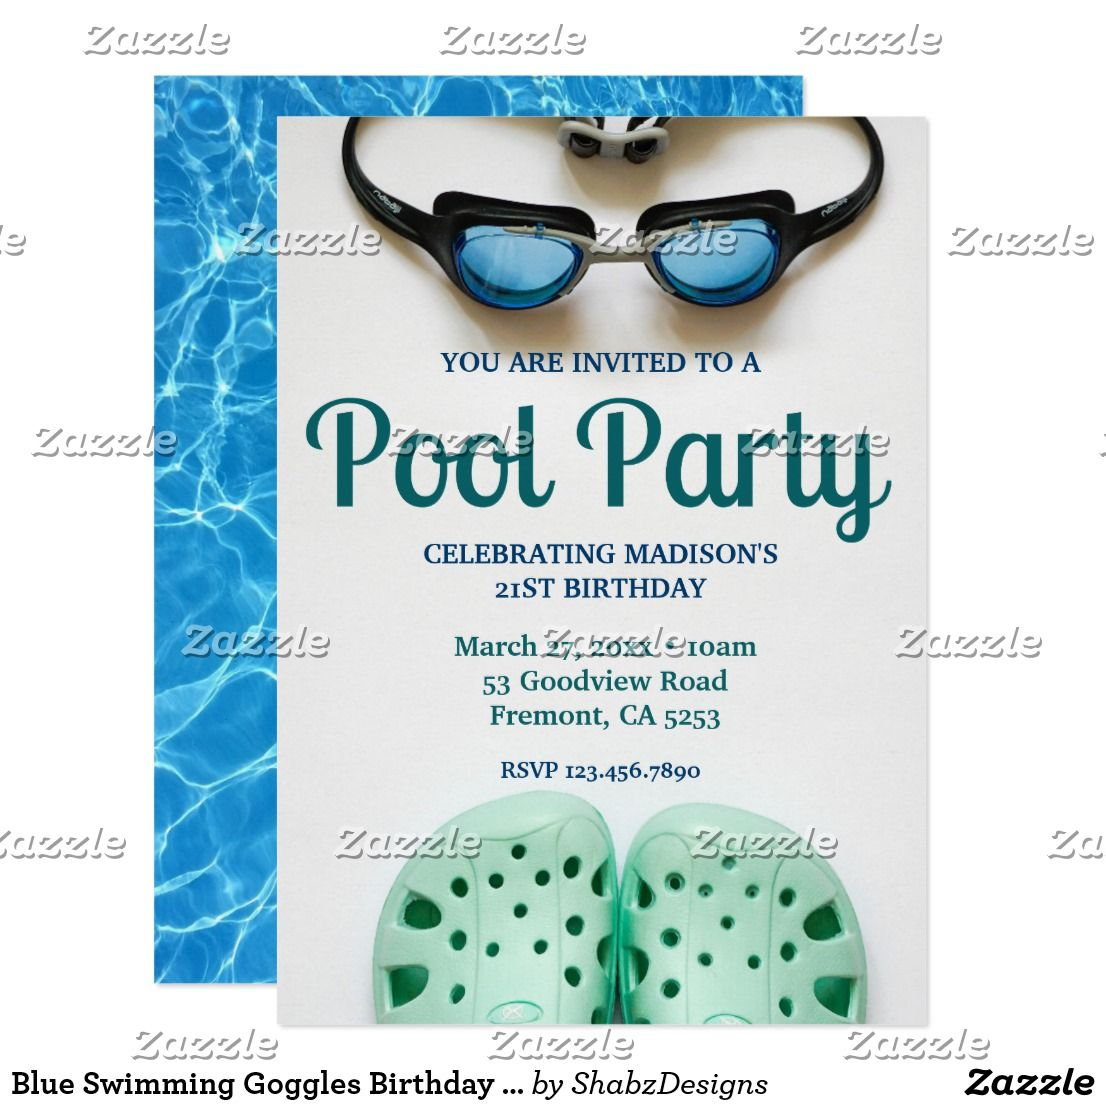 Blue Swimming Goggles Birthday Pool Party Invitation Invite Your Guests With This Modern Just Add All The Event Details